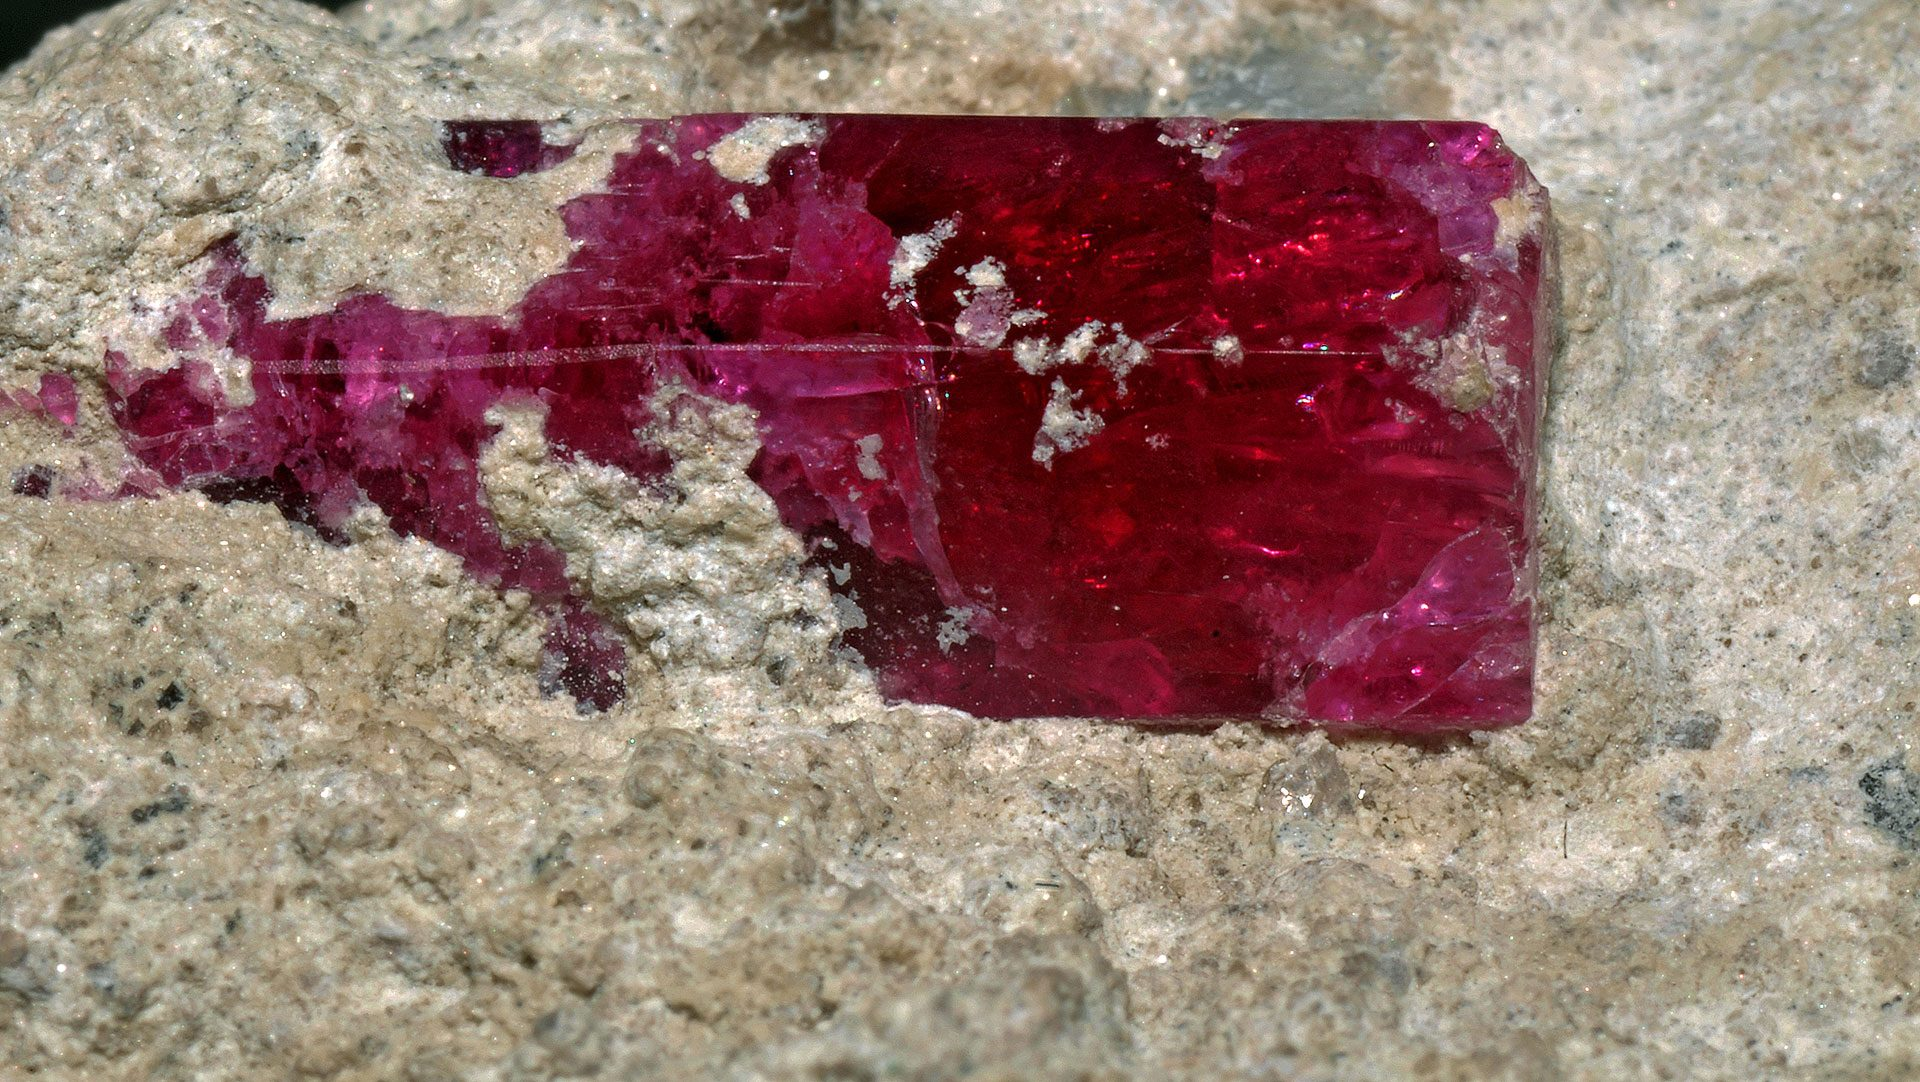 Terminated Bixbite Crystal Specimen - Red Beryl